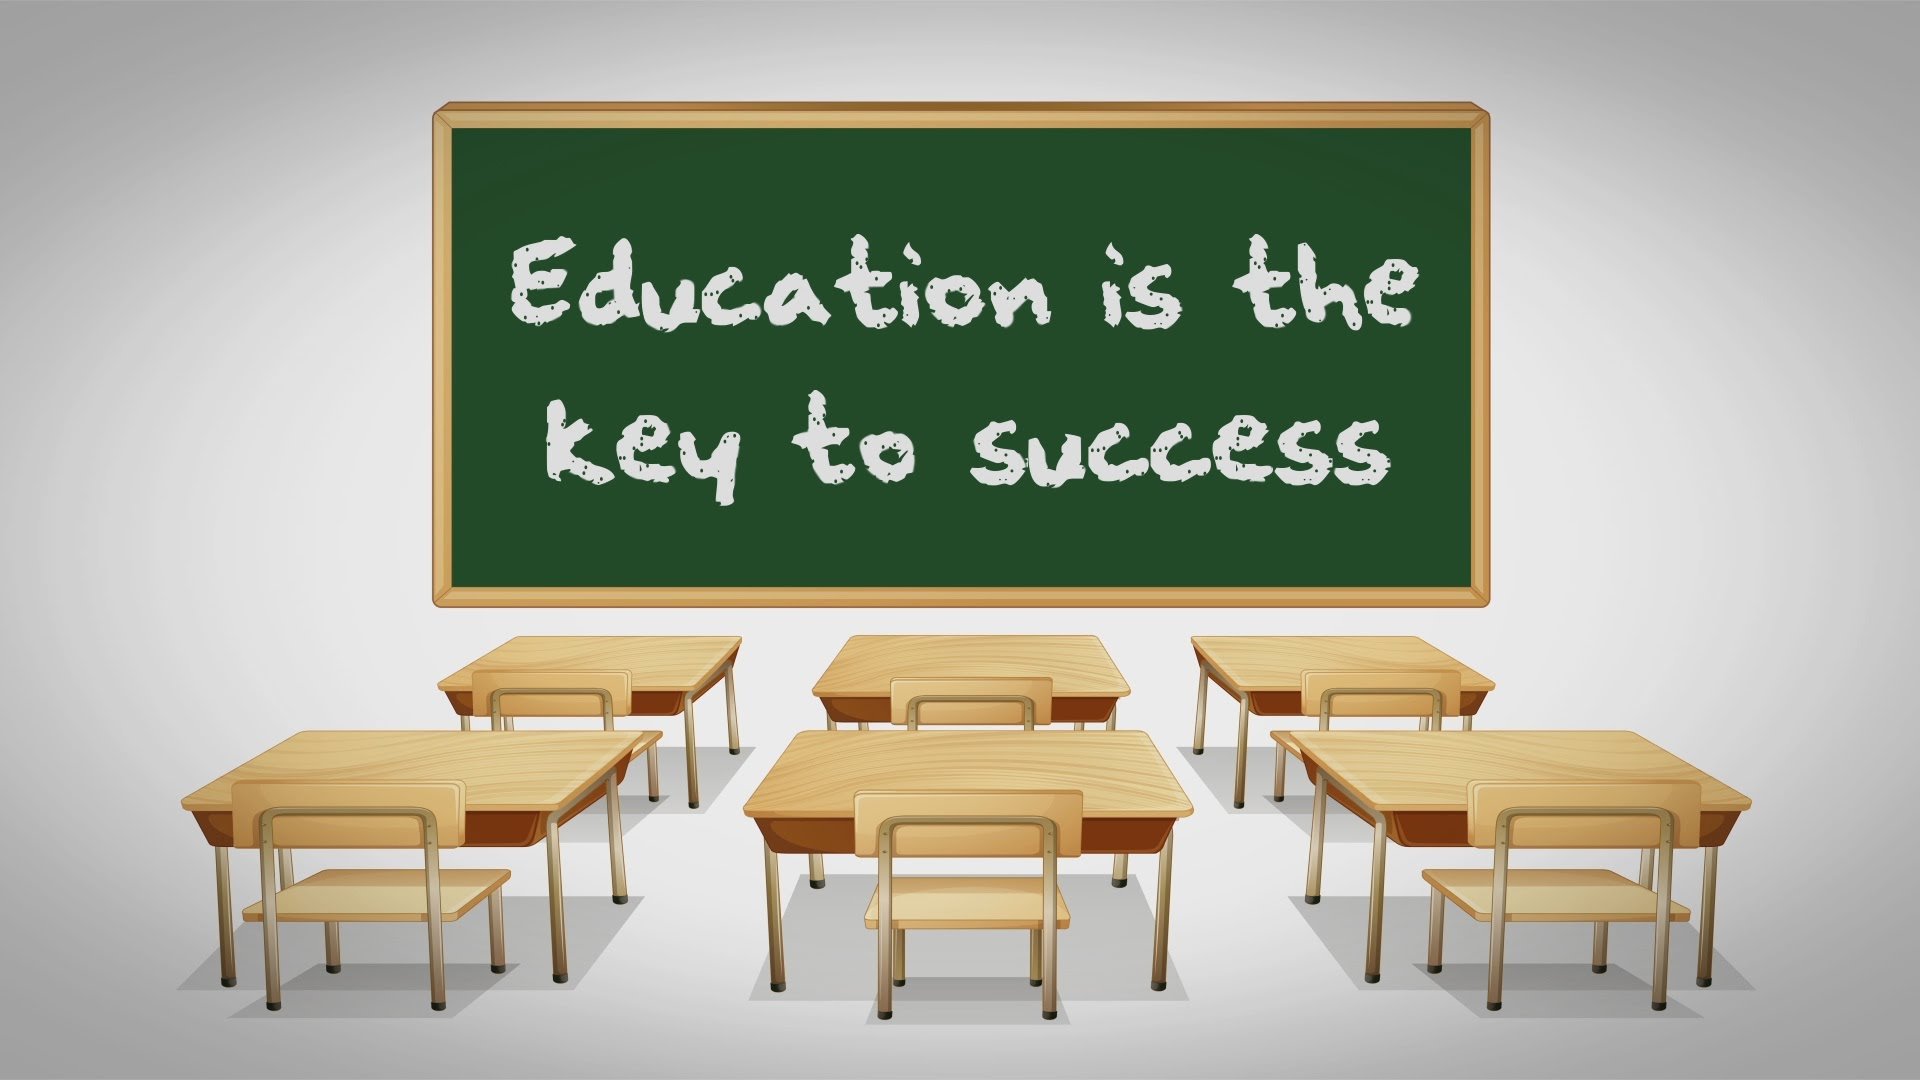 Learning (education) is much bigger than school, low grades should ...